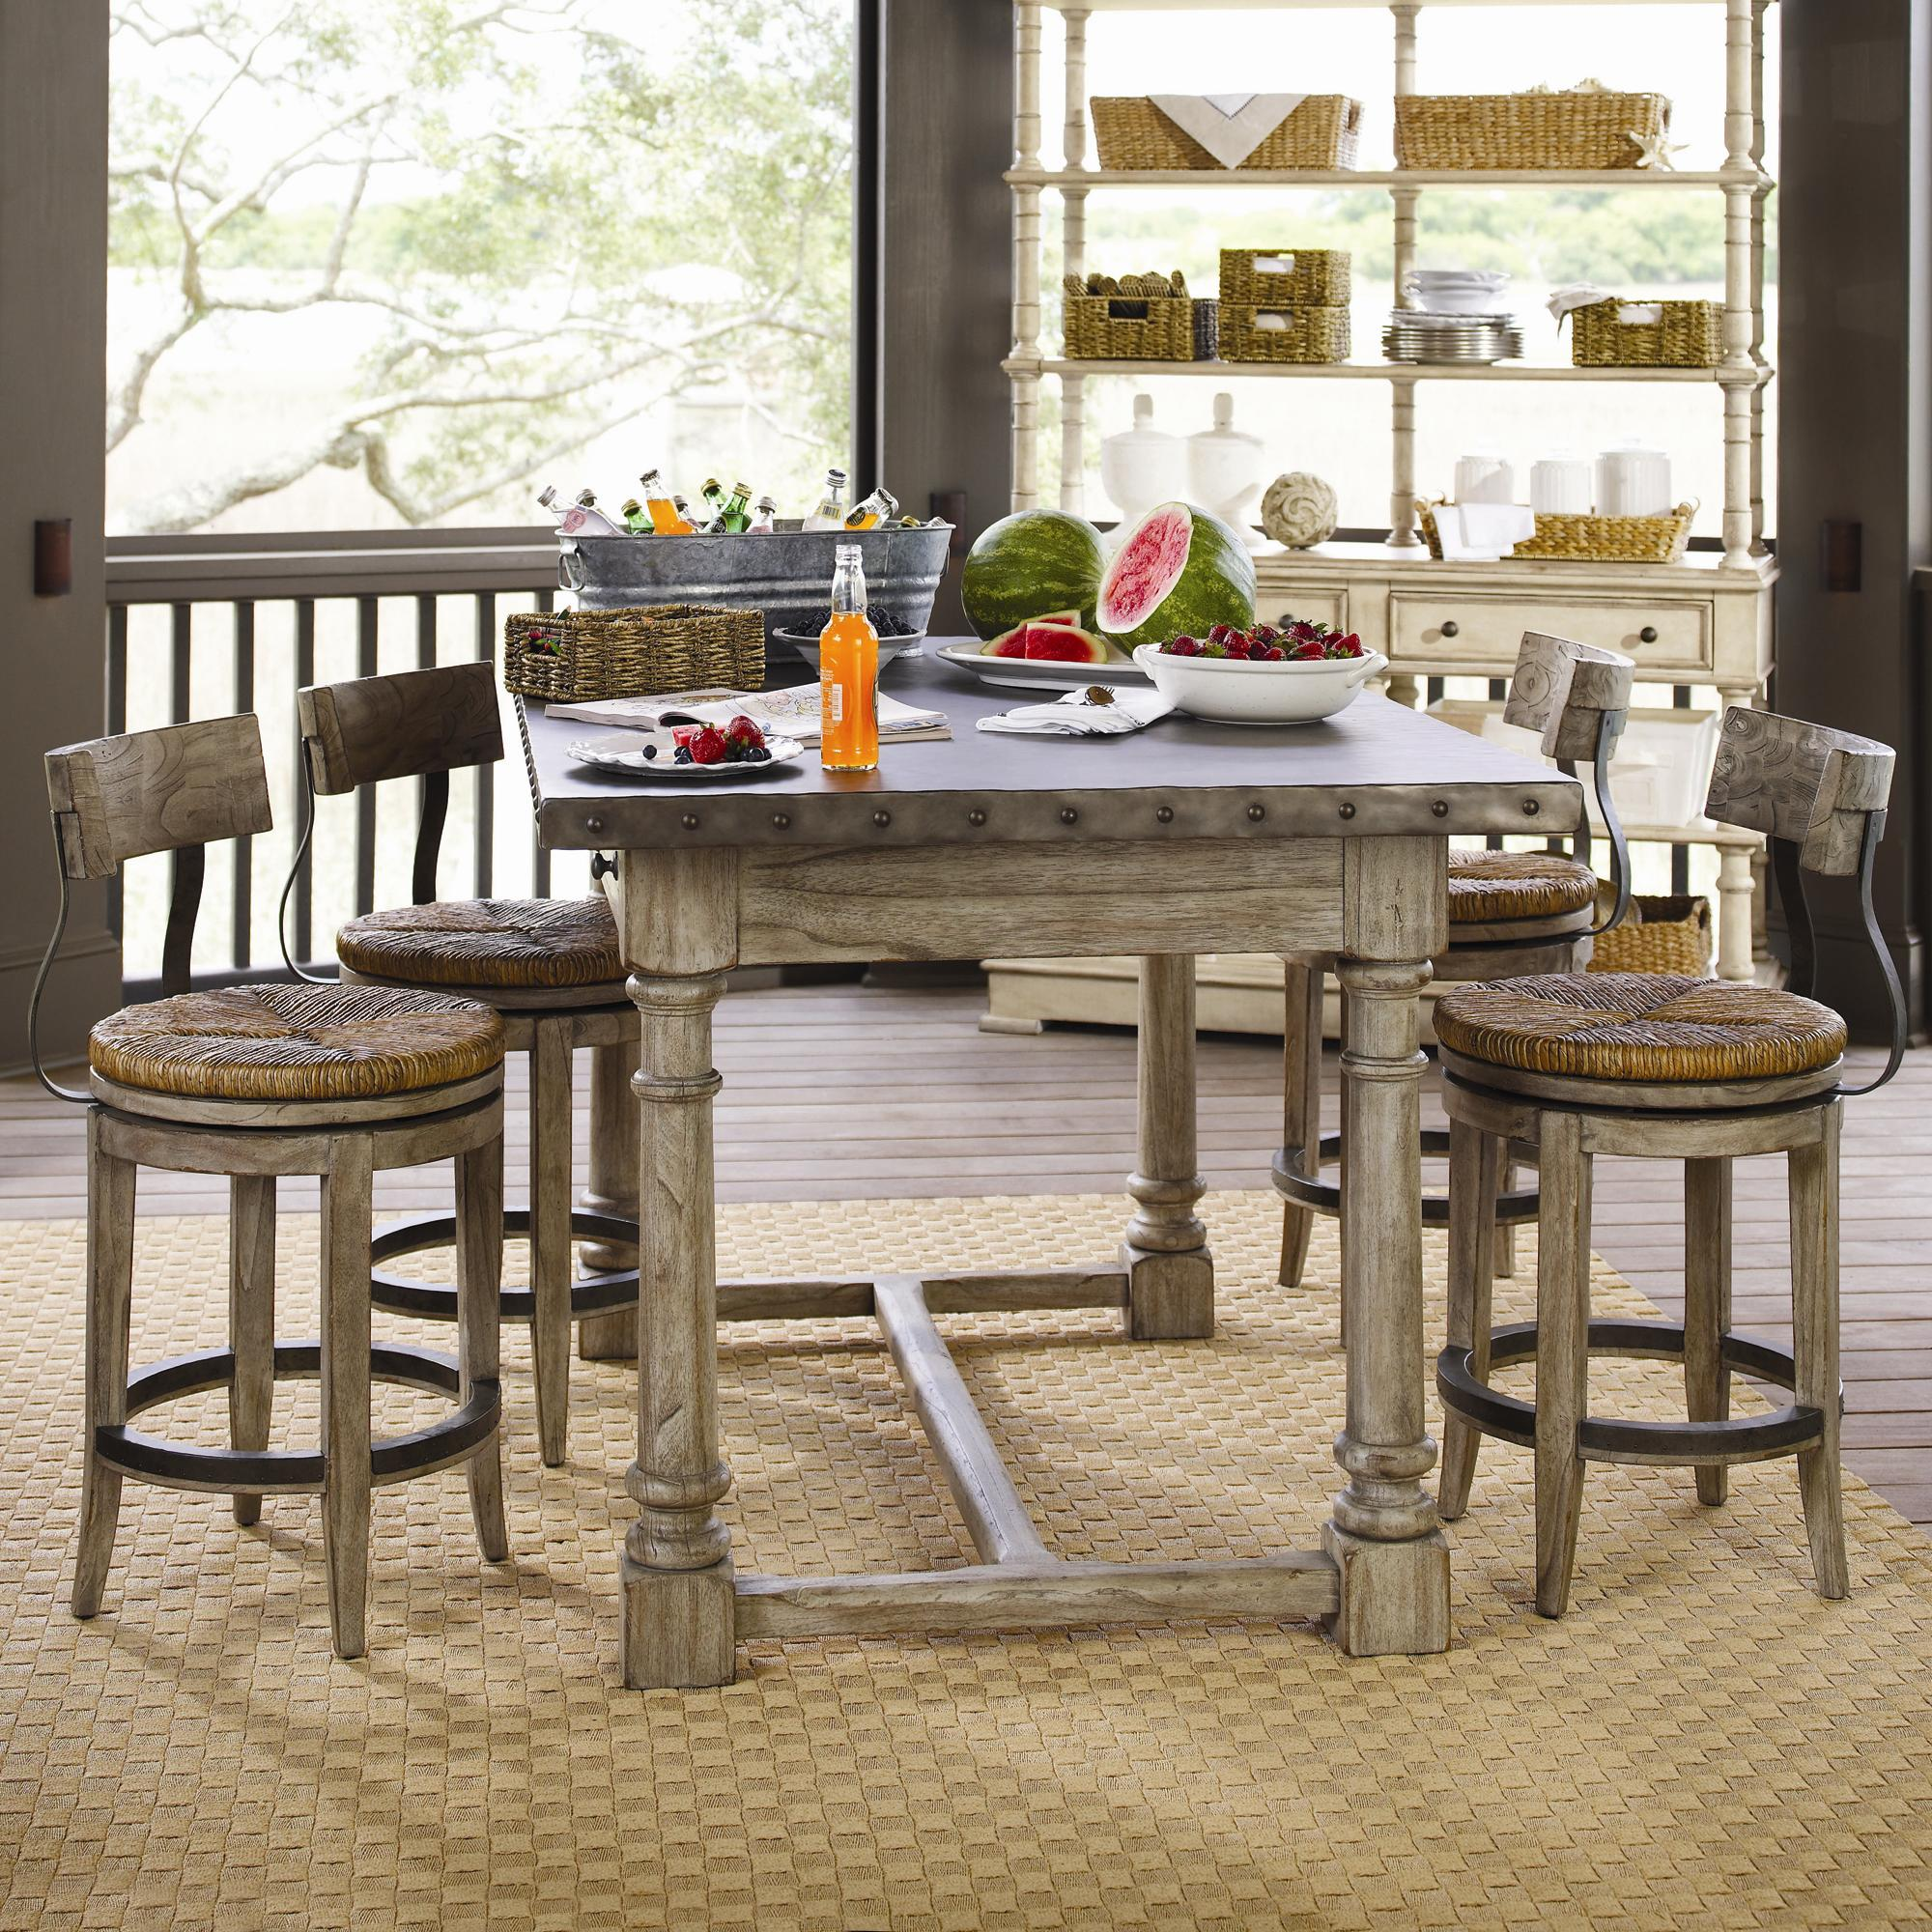 Lexington Twilight Bay 5 Piece Shelter Island Bistro Table Dalton Counter Stools Set Baer 39 S